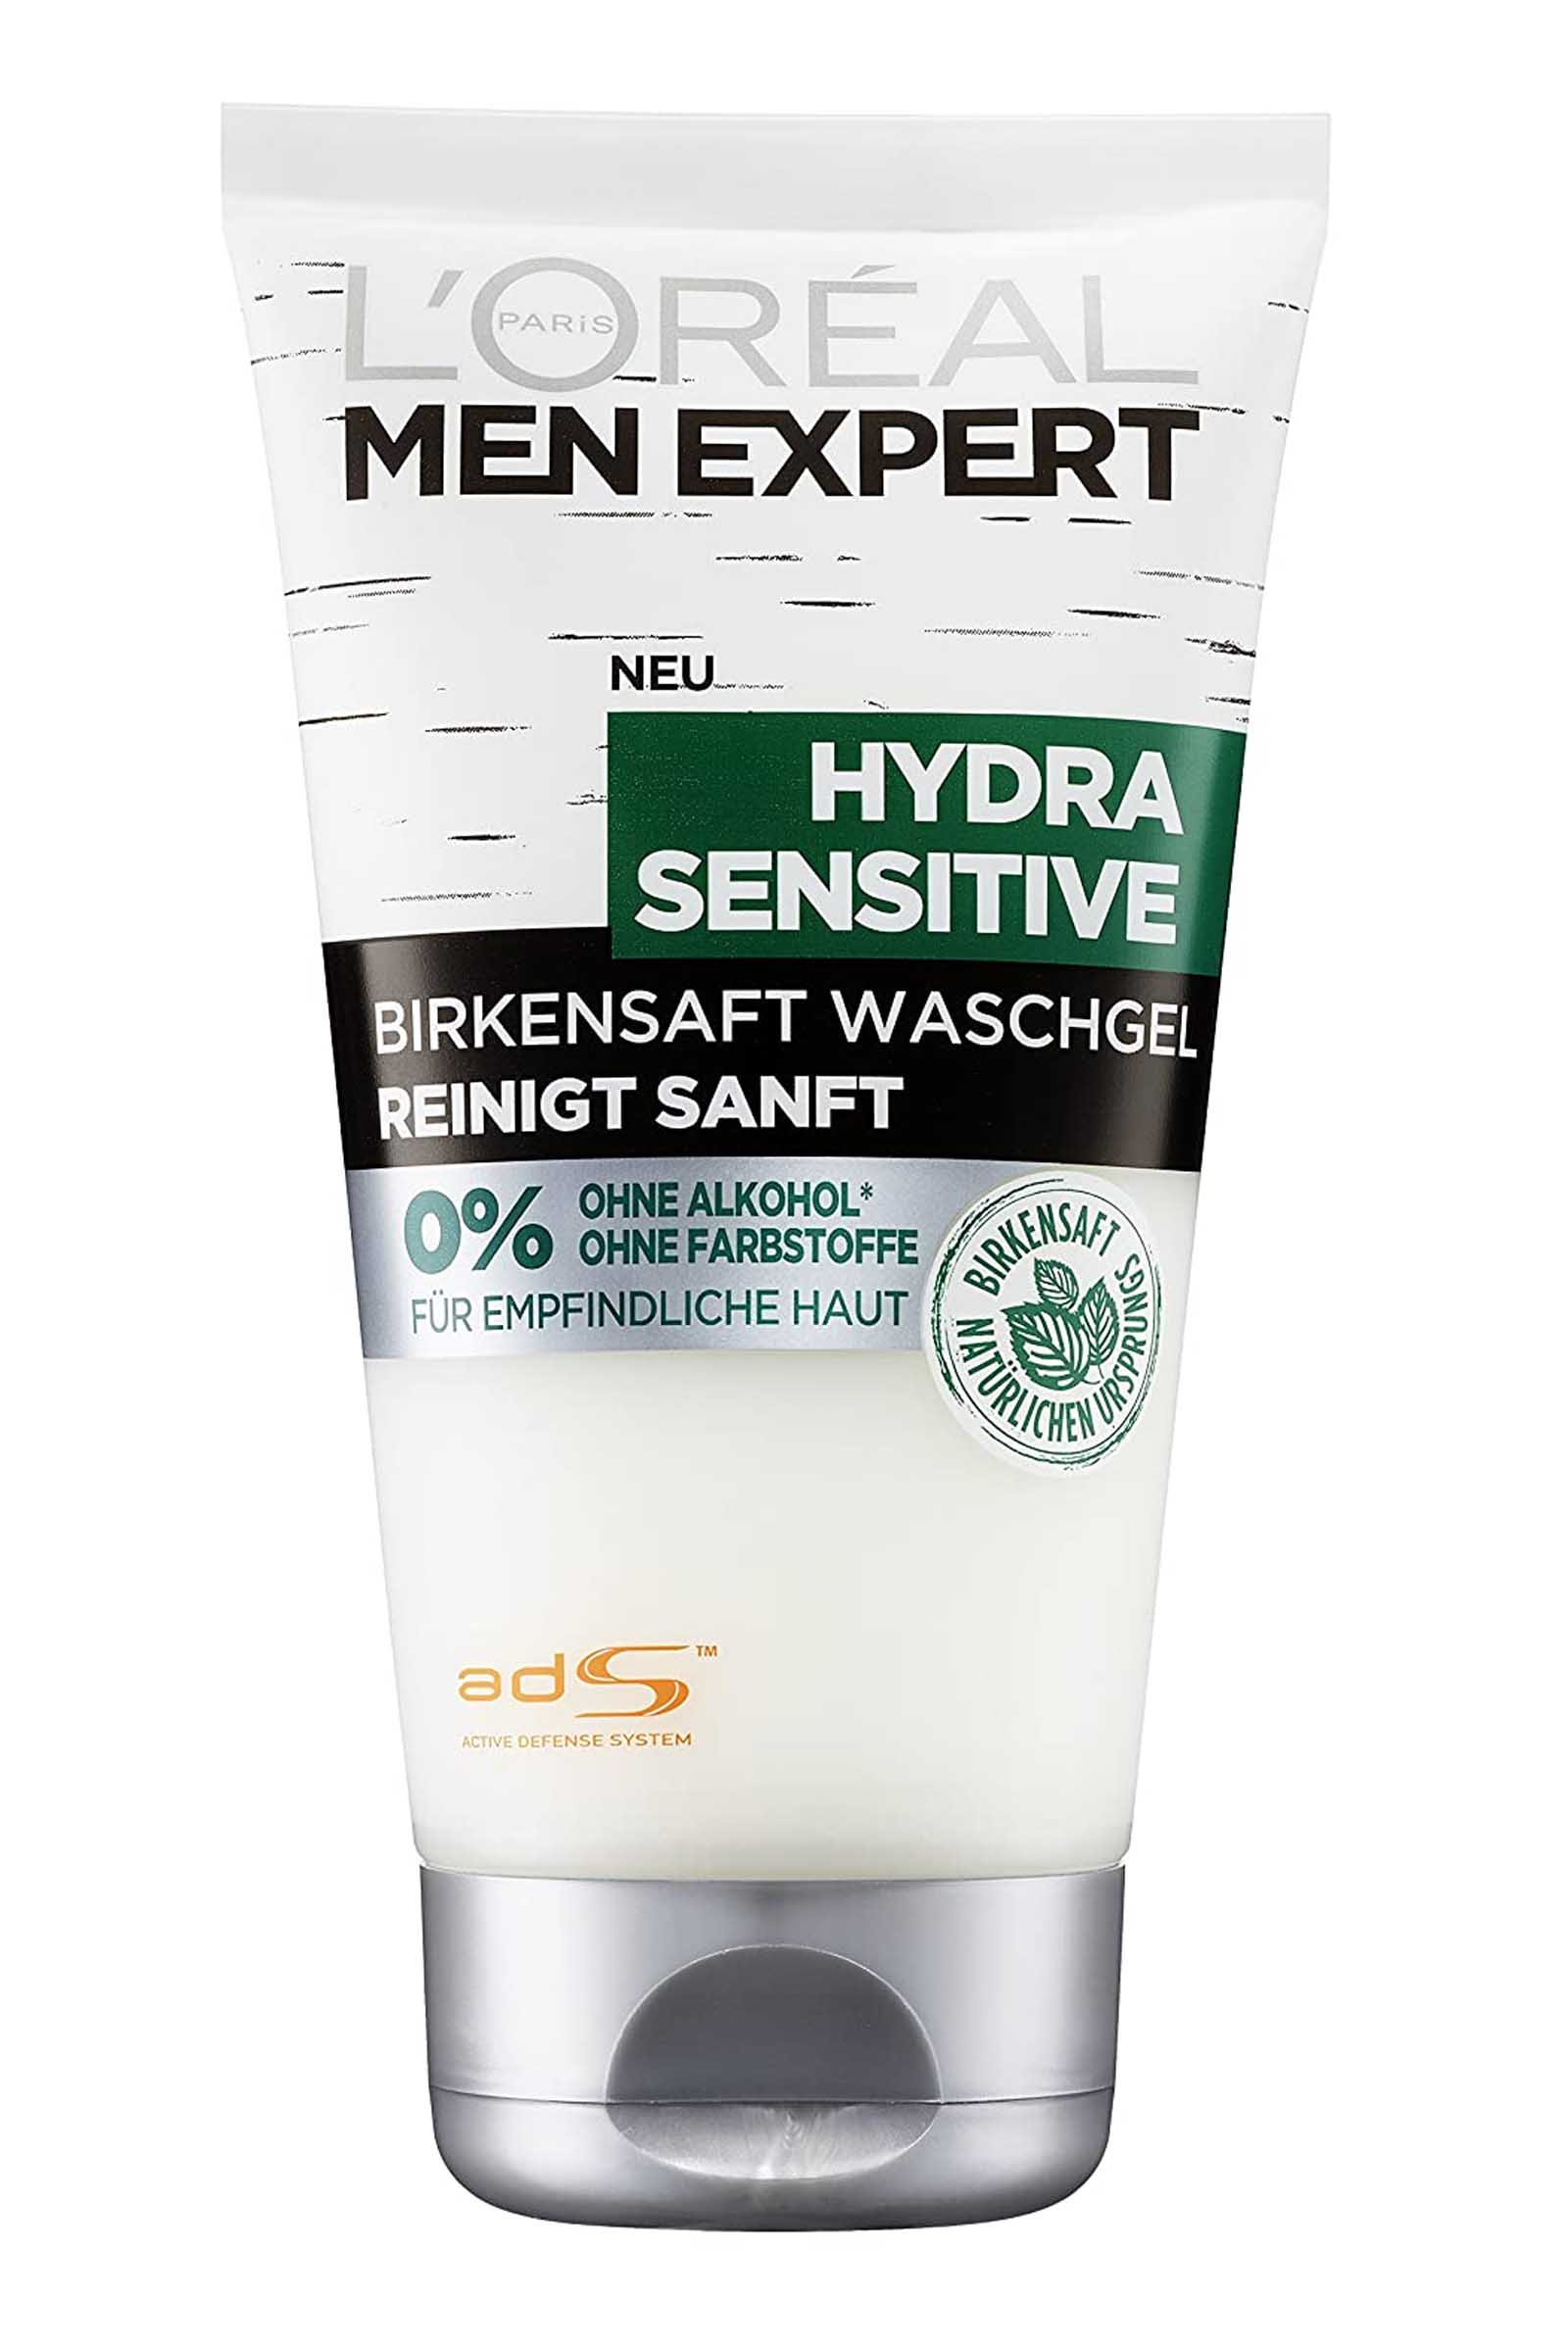 L Oreal Men Expert by LOreal Face Wash Gel Hydra Sentive 150ml No Alcohol made with BirchSap